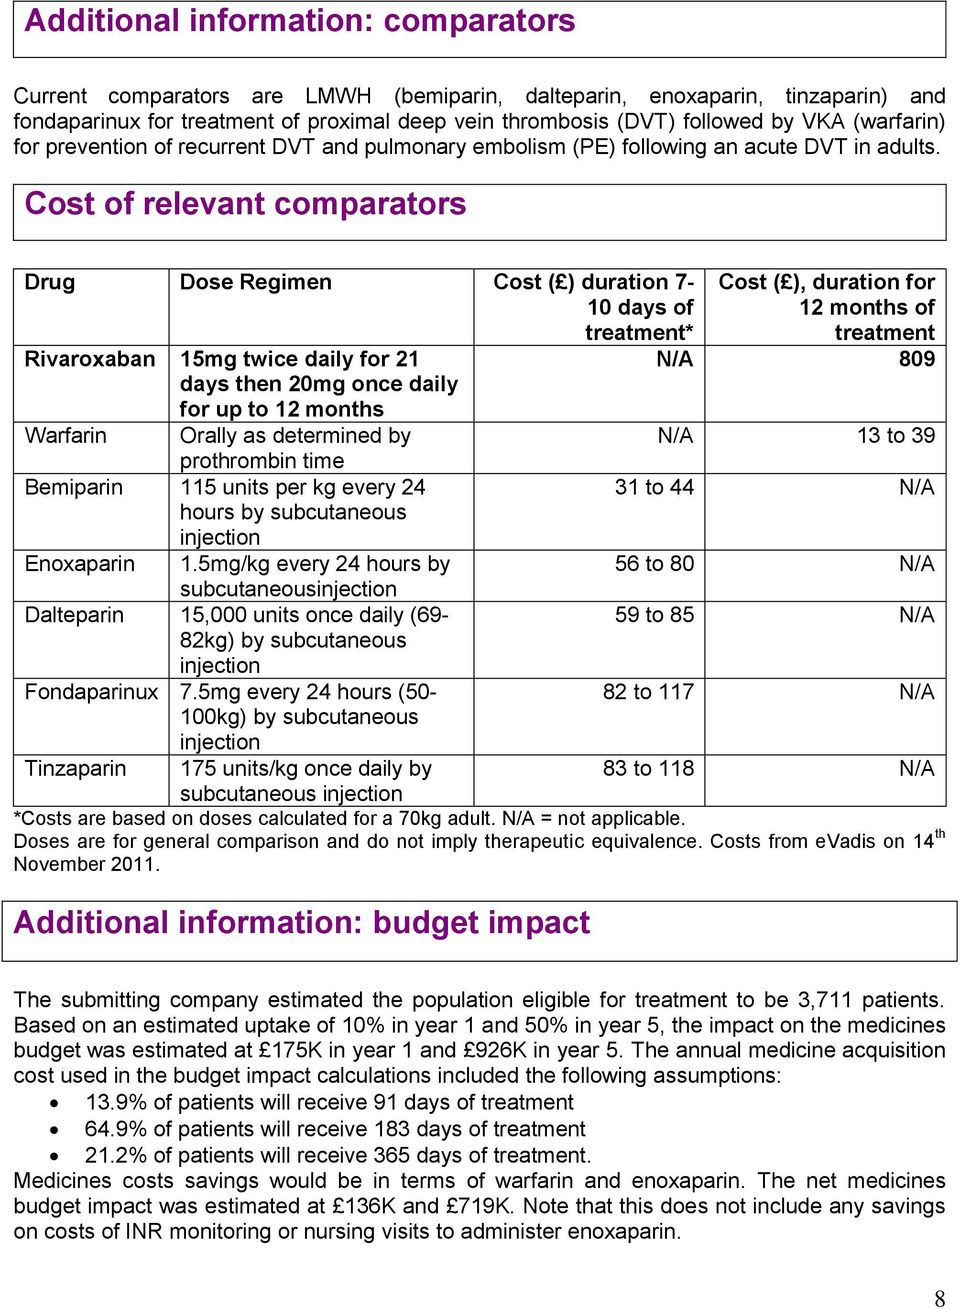 Cost of relevant comparators Drug Dose Regimen Cost ( ) duration 7-10 days of treatment* Rivaroxaban 15mg twice daily for 21 days then 20mg once daily for up to 12 months Warfarin Orally as